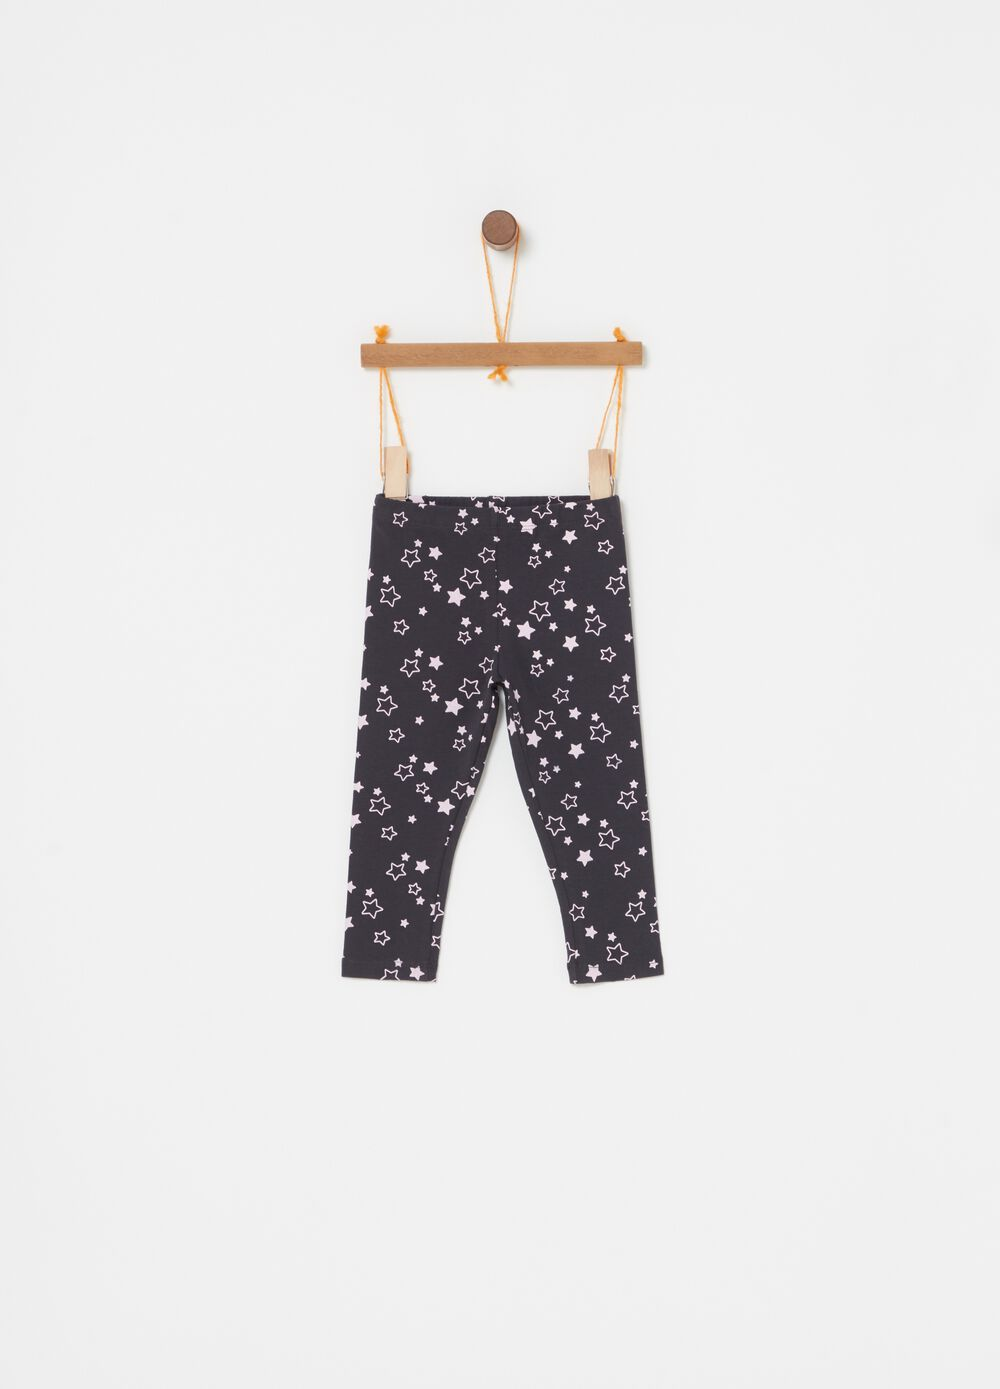 Stretch biocotton leggings with stars print